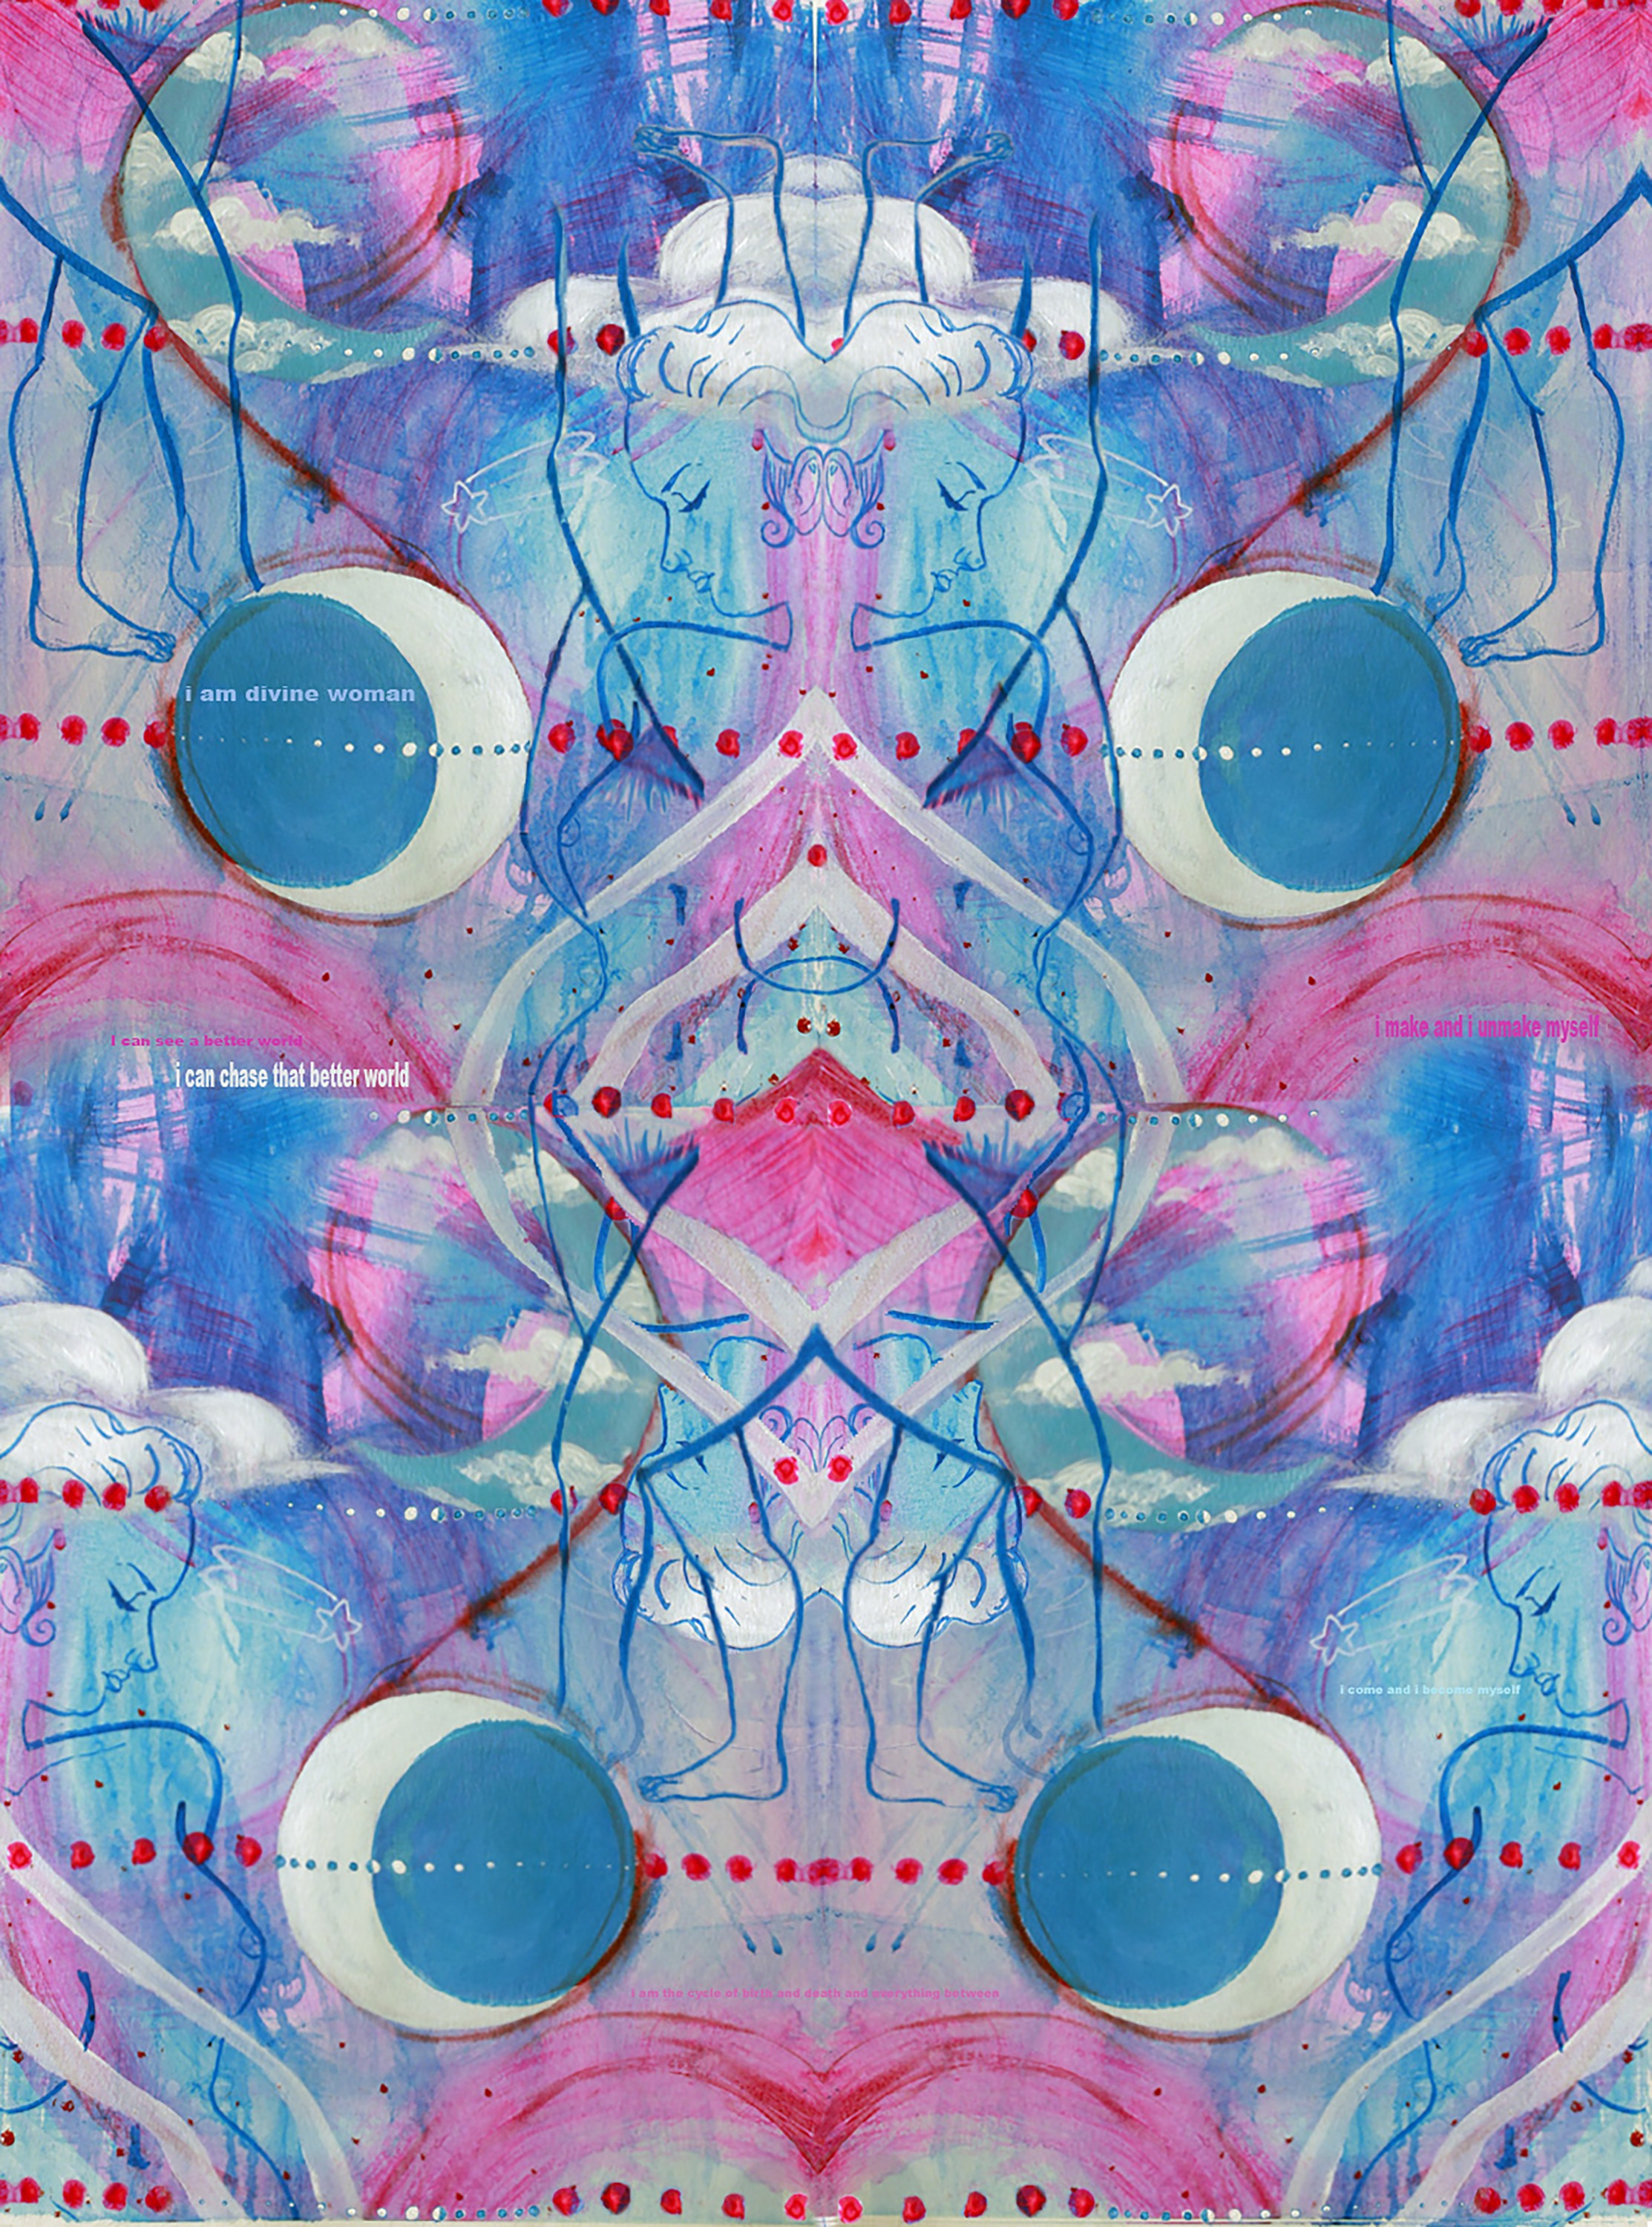 A pink and blue patterned image making use of a crescent moon motif, a line of pink dots, a triple-breasted female nude form, and some white clouds.